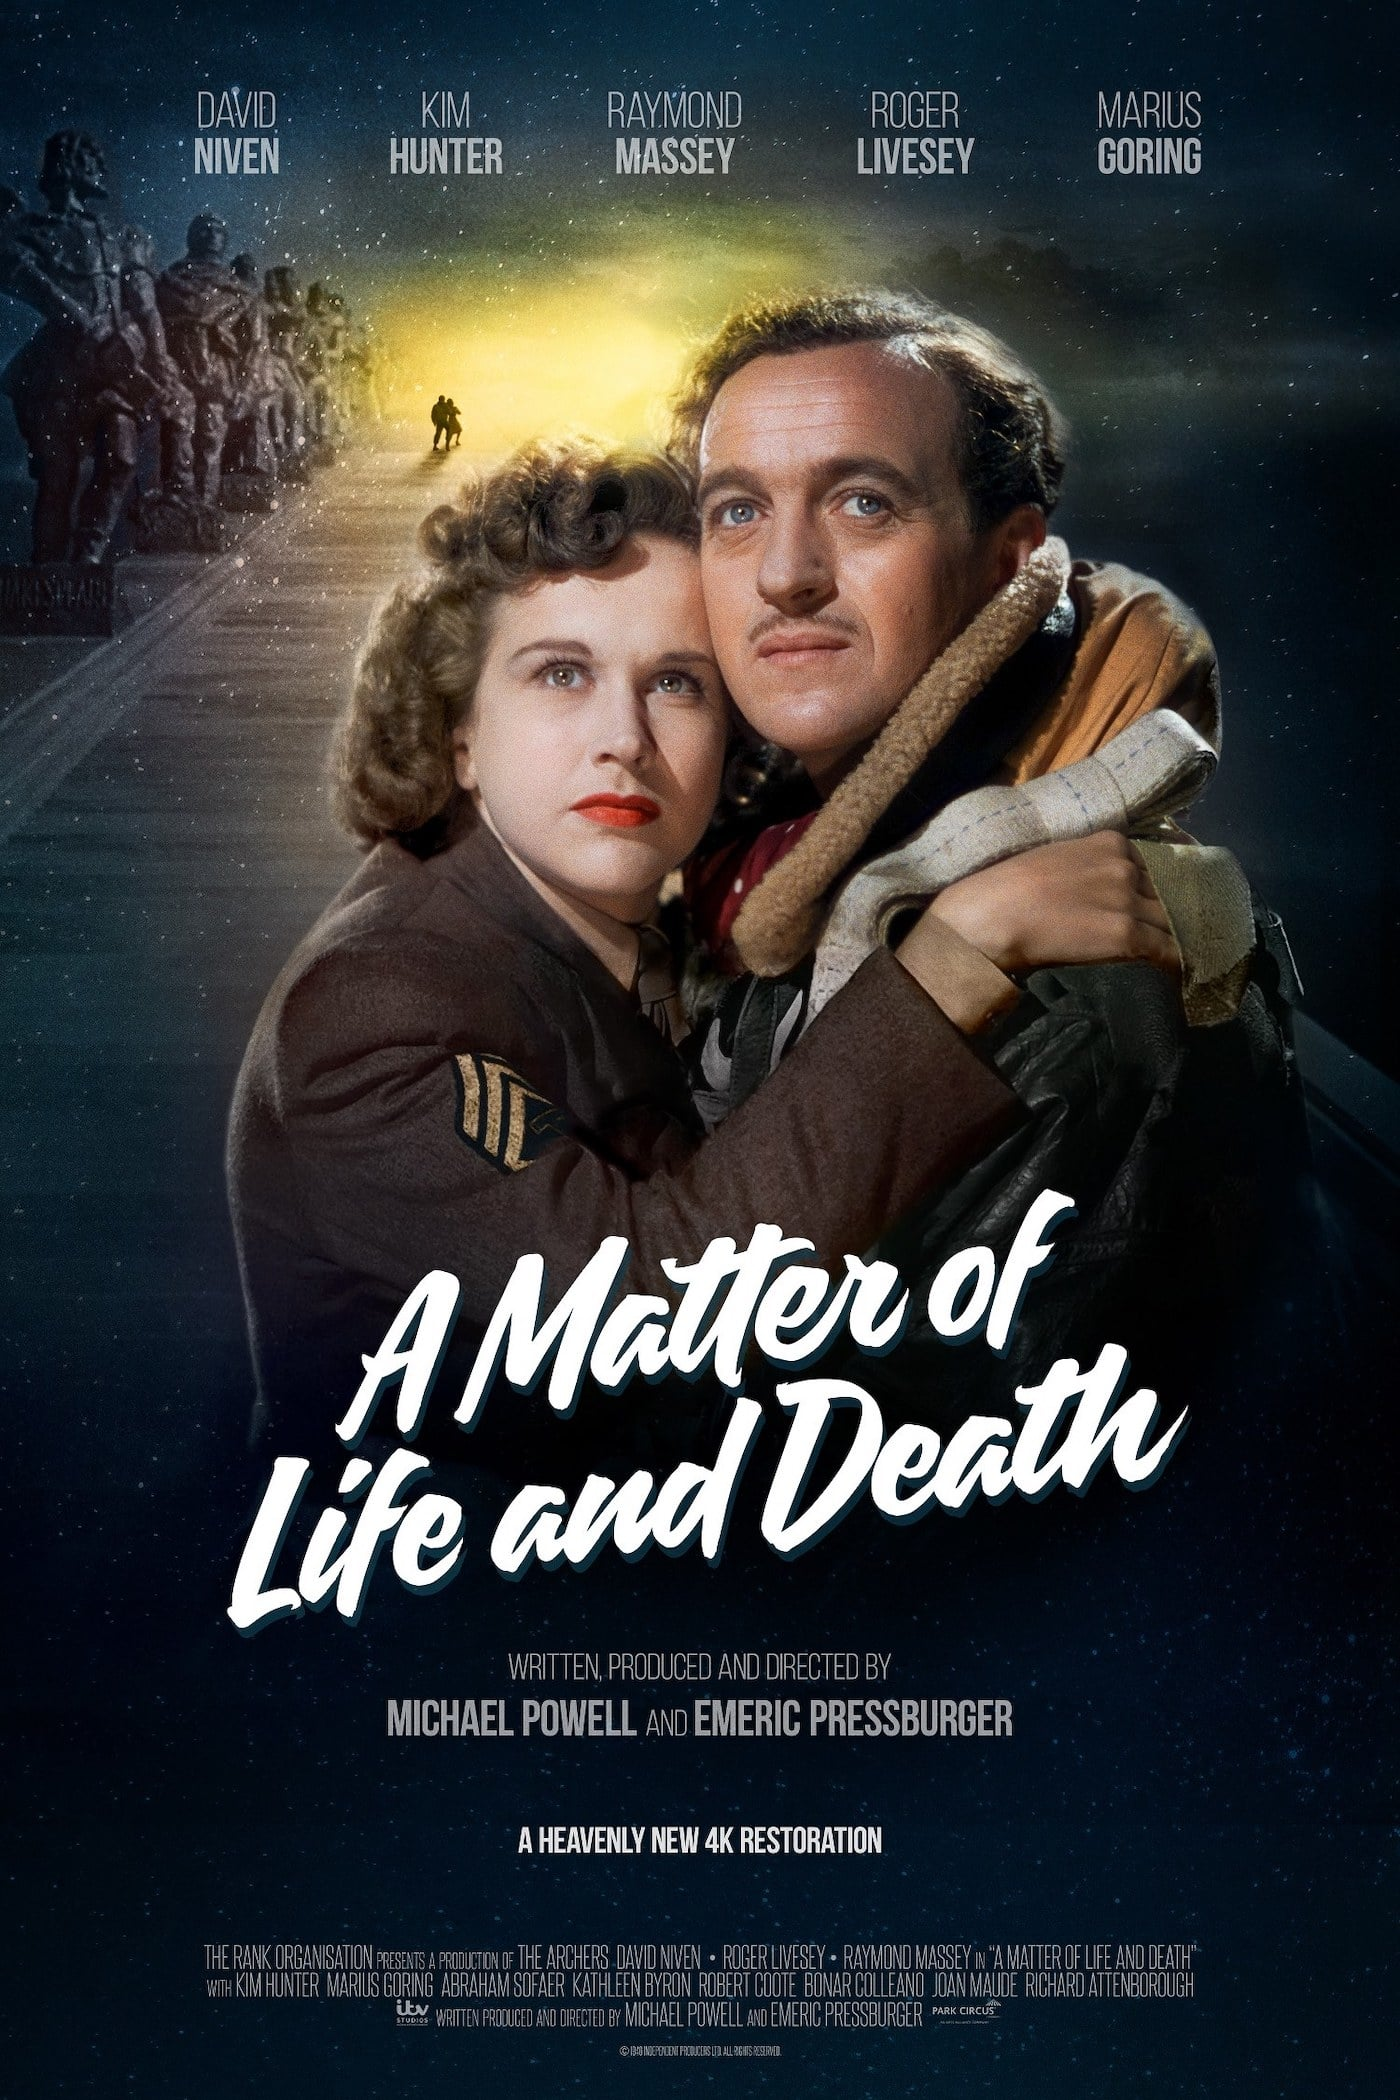 A Matter of Life and Death  (1946) - Directed by: Michael Powell, Emeric PressburgerStarring: David Niven, Kim Hunter, Robert Coote, Kathleen Byron, Richard Attenborough, Marius Goring, Roger LiveseyRated: PGRunning Time: 1 h 44 mTMM Score: 4 stars out of 5STRENGTHS: Concept, Production Design, Special Effects, Humor, ThemesWEAKNESSES: Pacing